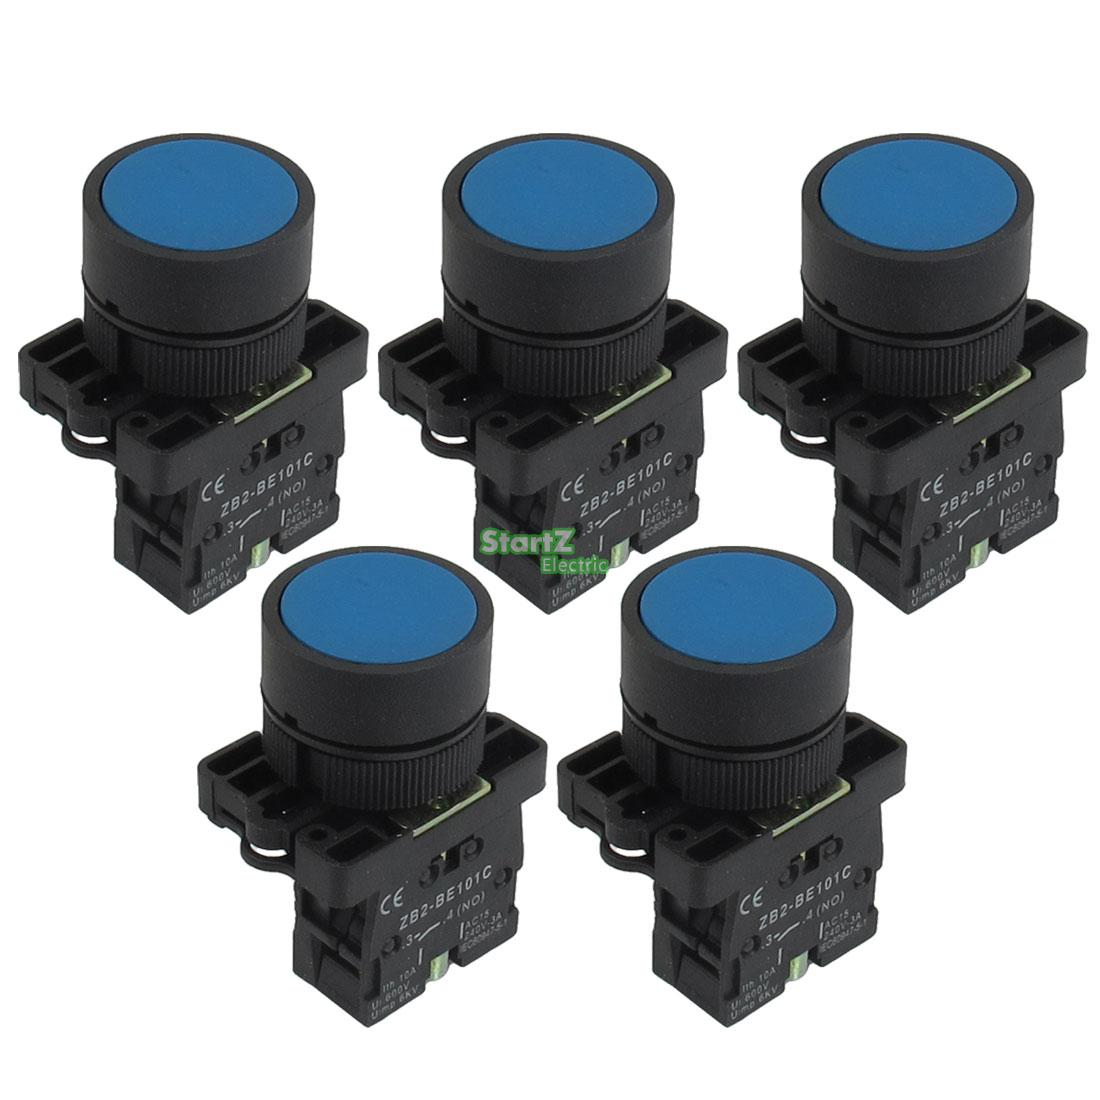 5 x 22mm 1 NO N/O Blue Sign Momentary Push Button Switch 600V 10A